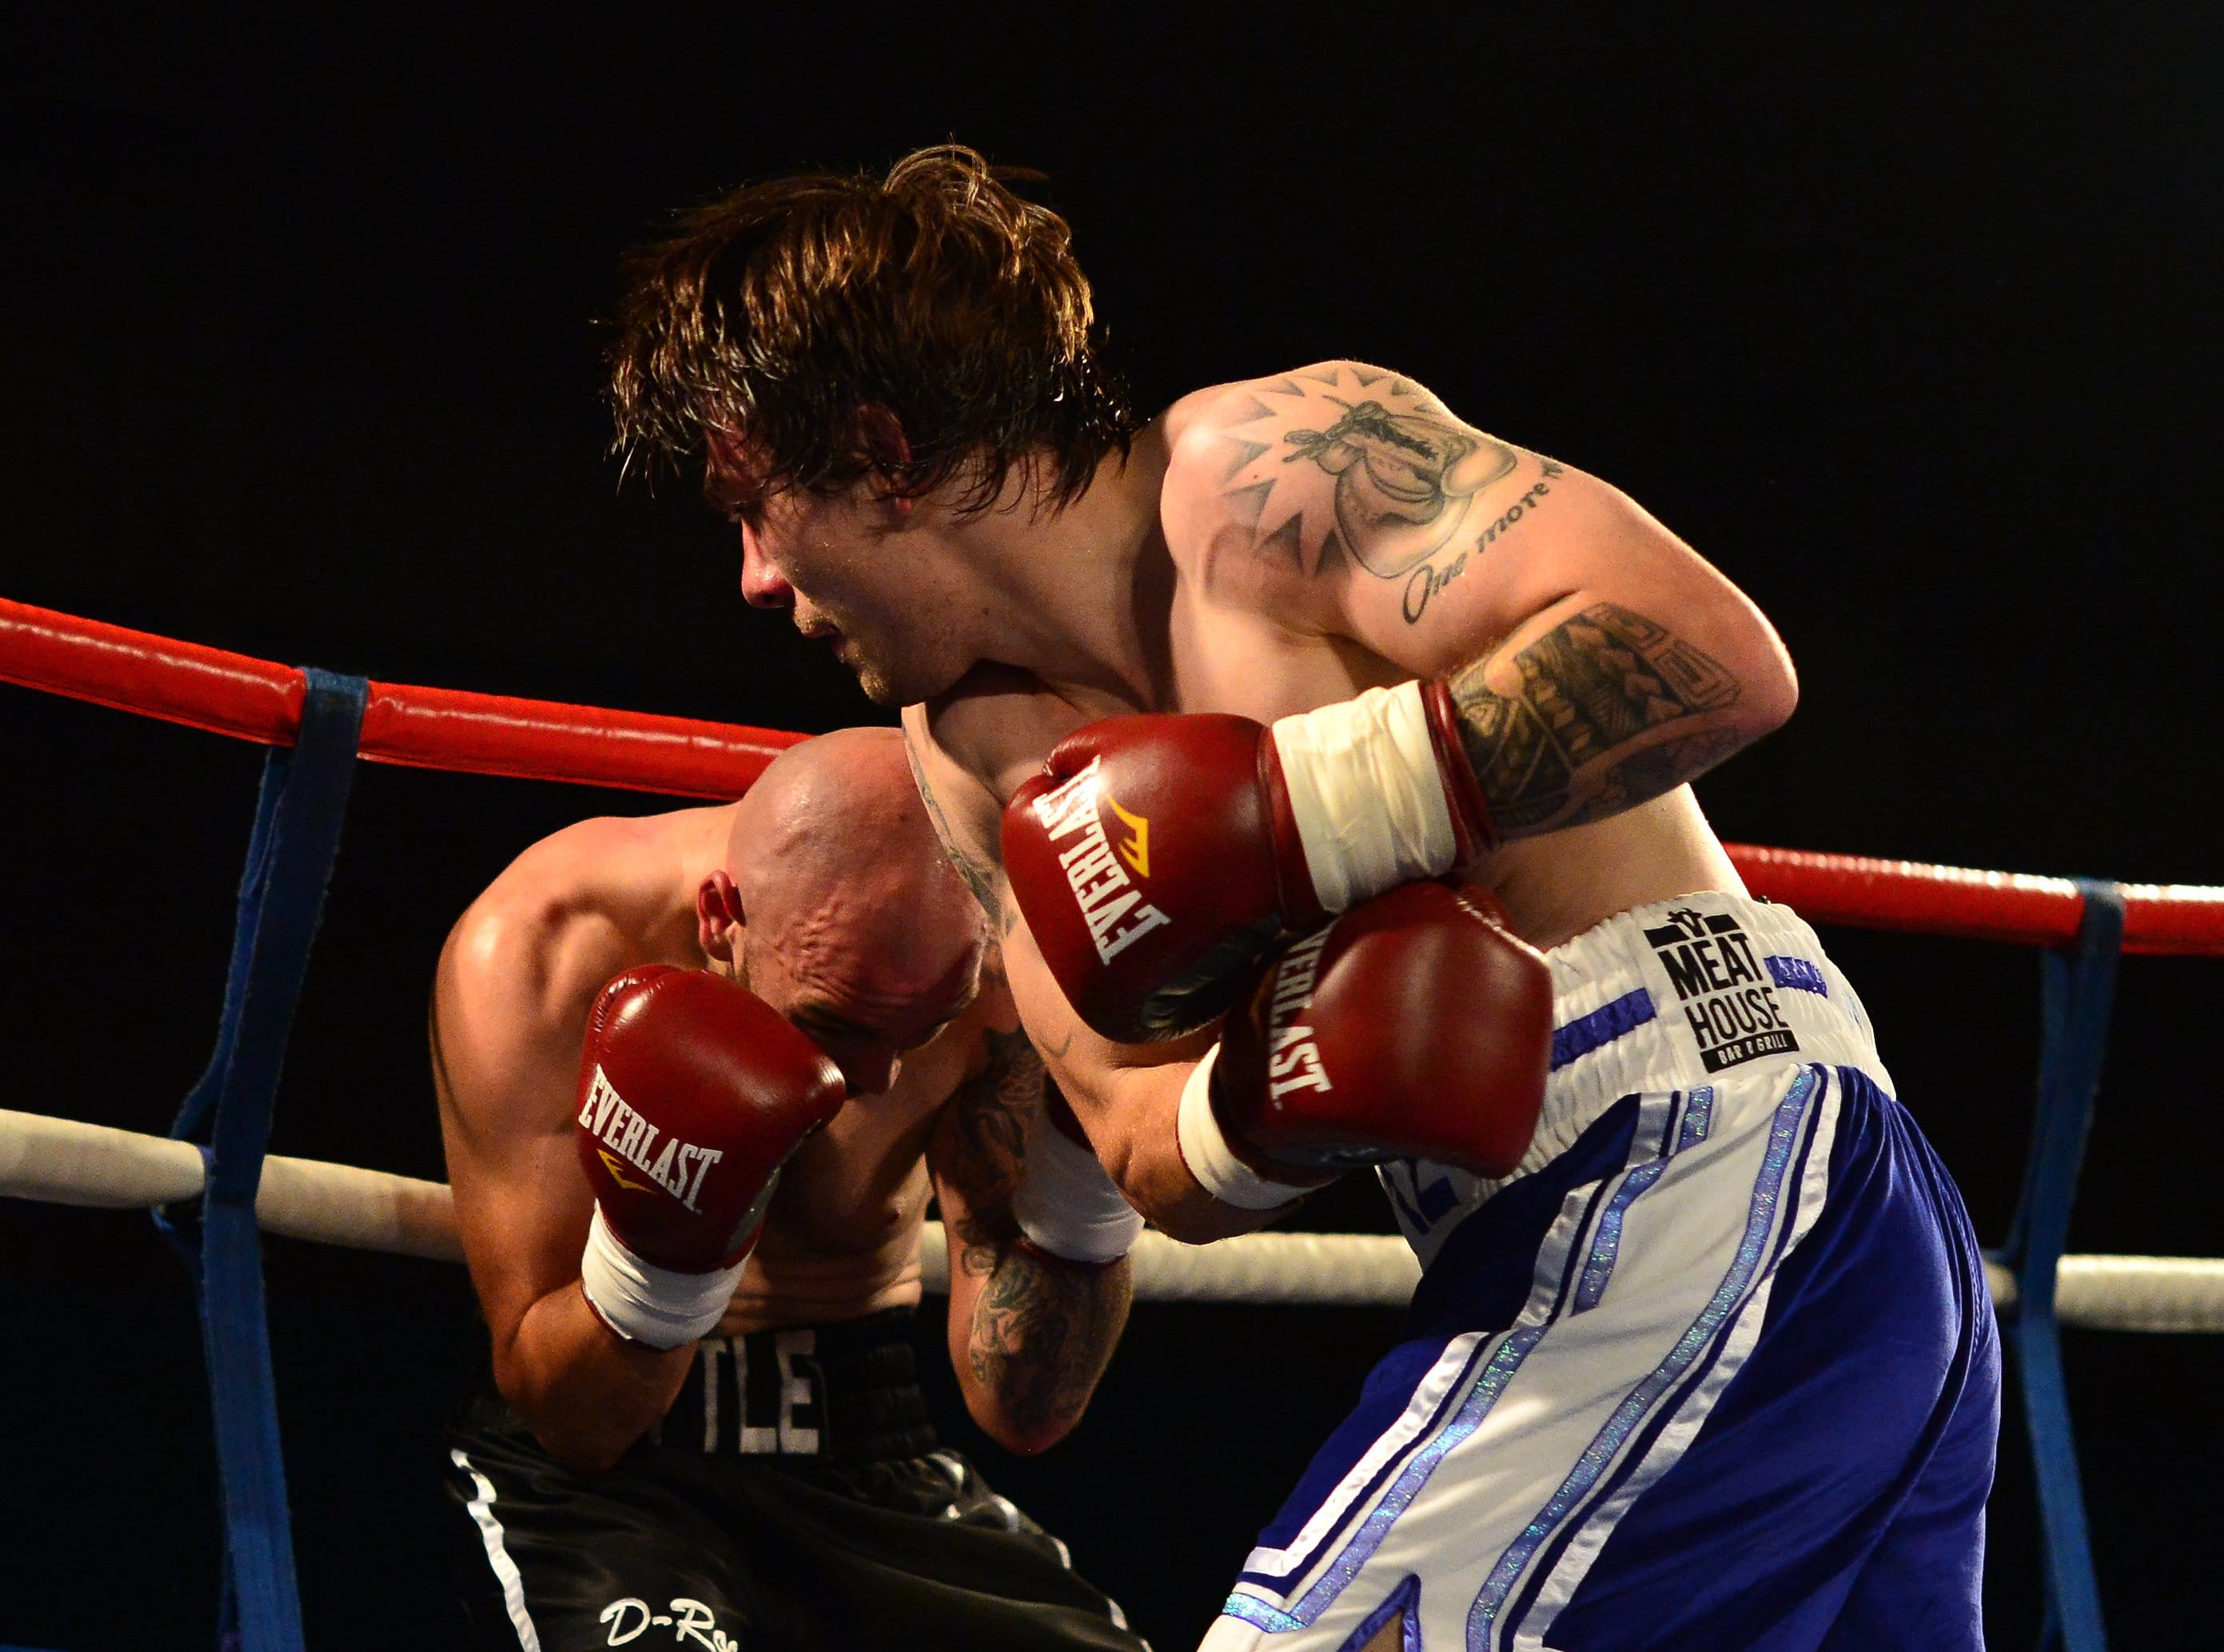 Ricky Hatton Sets Up Fundraising Page For Boxer Mike Towells Family wsi imageoptim GettyImages 474543464 1